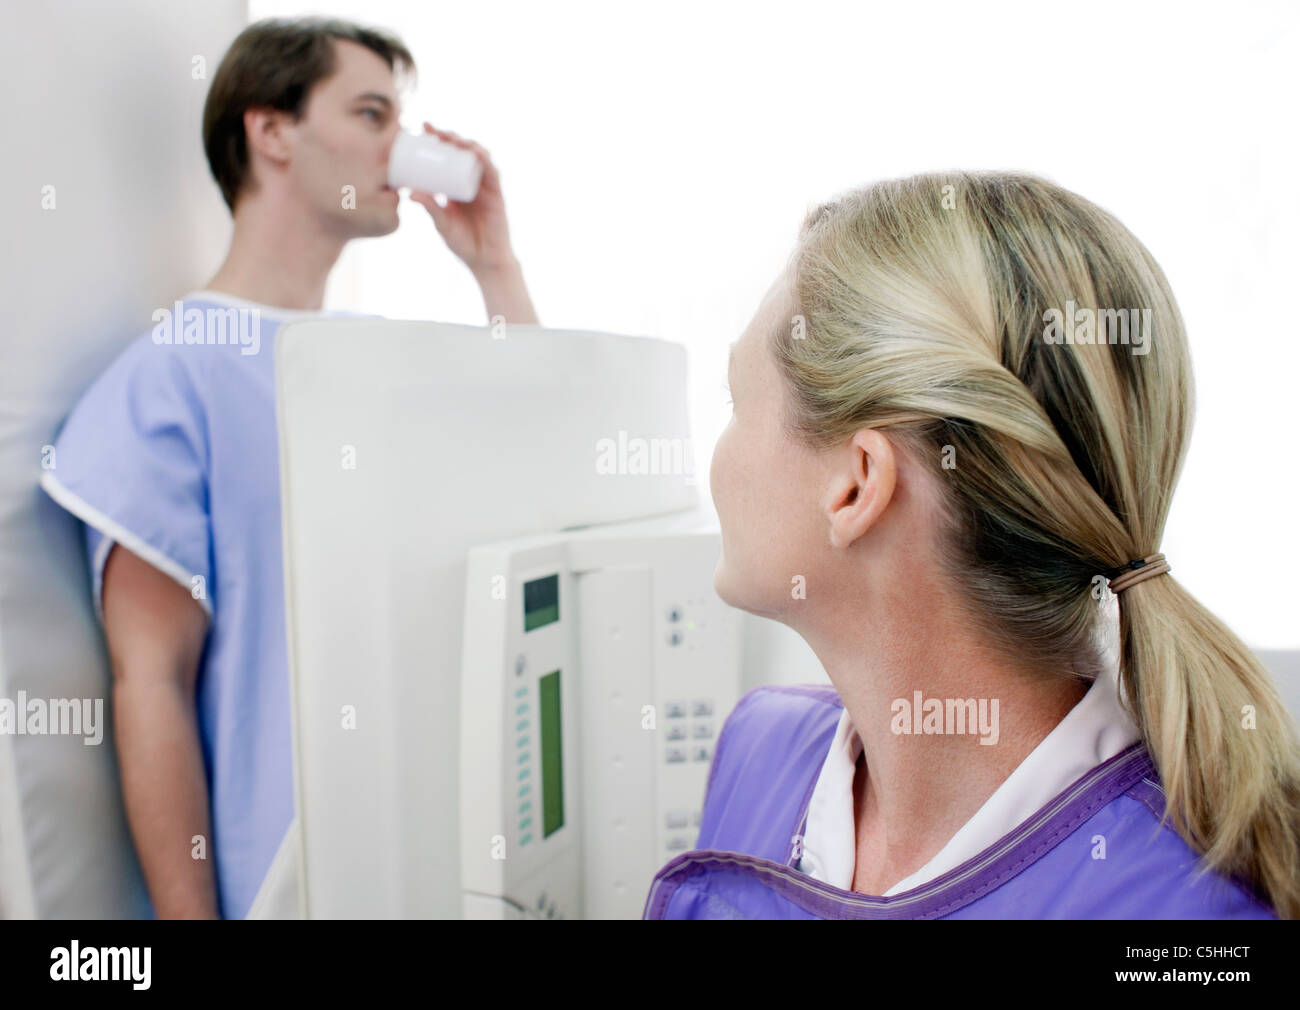 Man swallowing barium during an X-ray - Stock Image